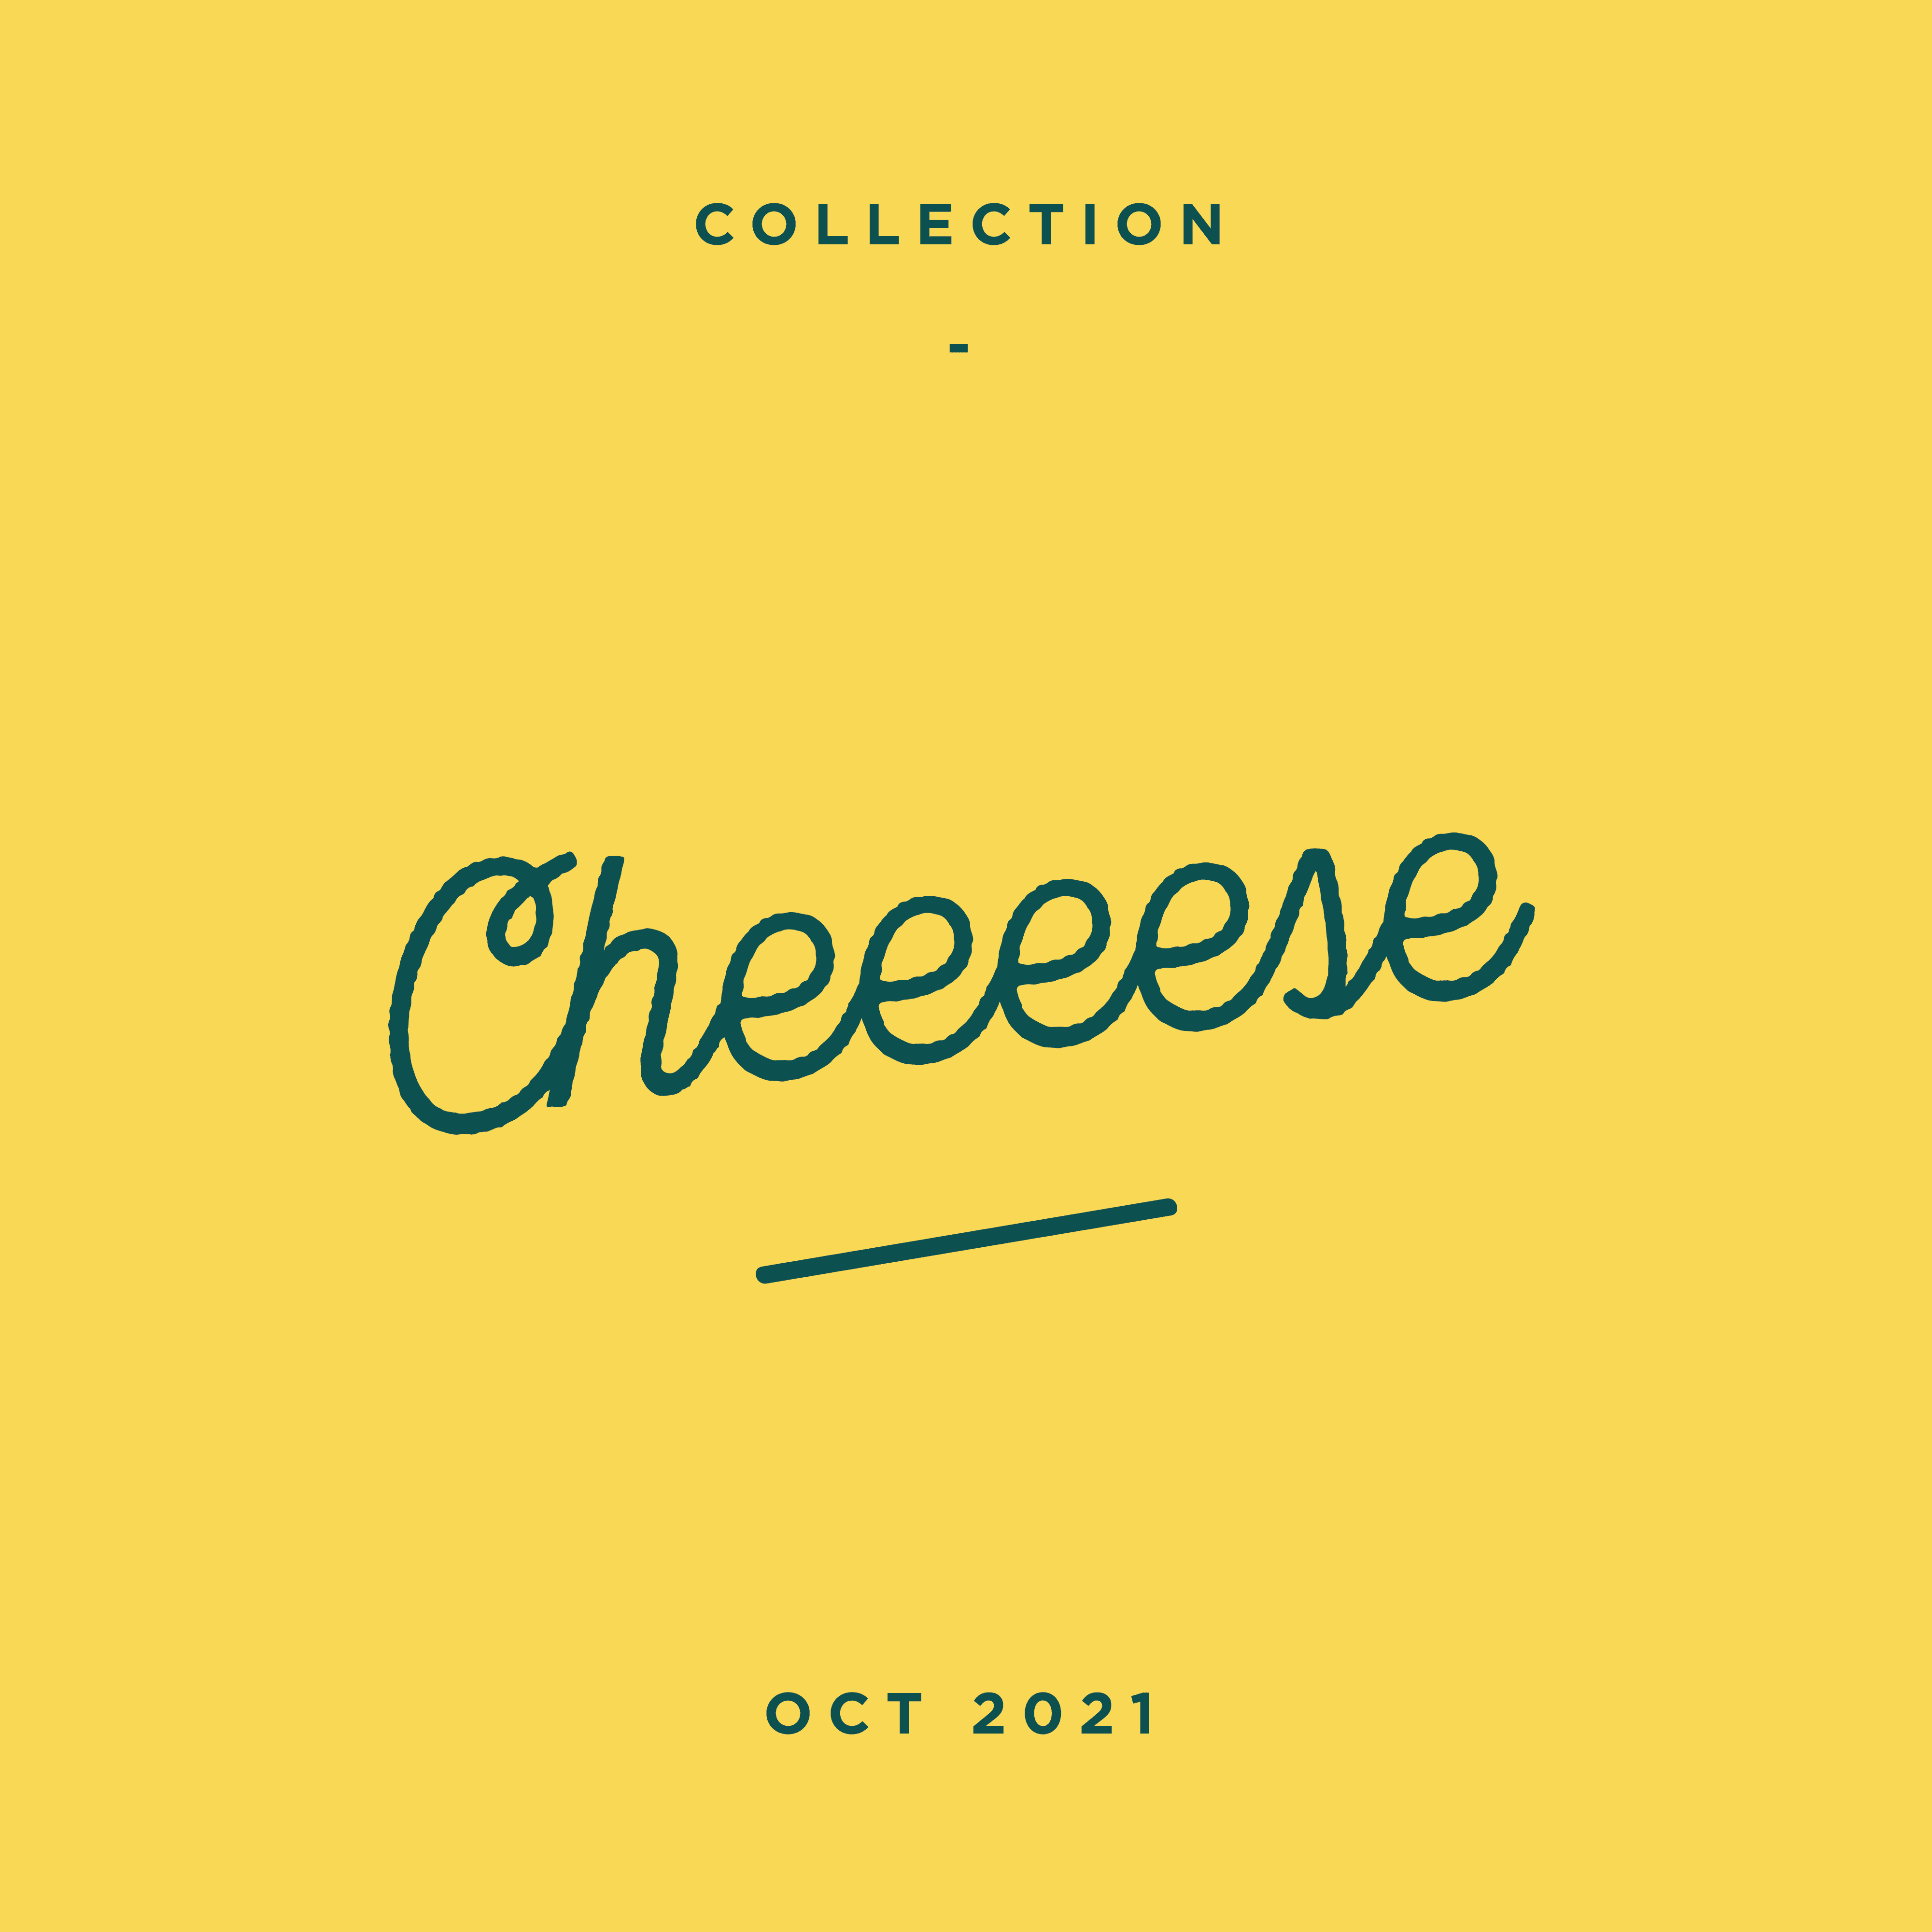 Collection cidres oct 21